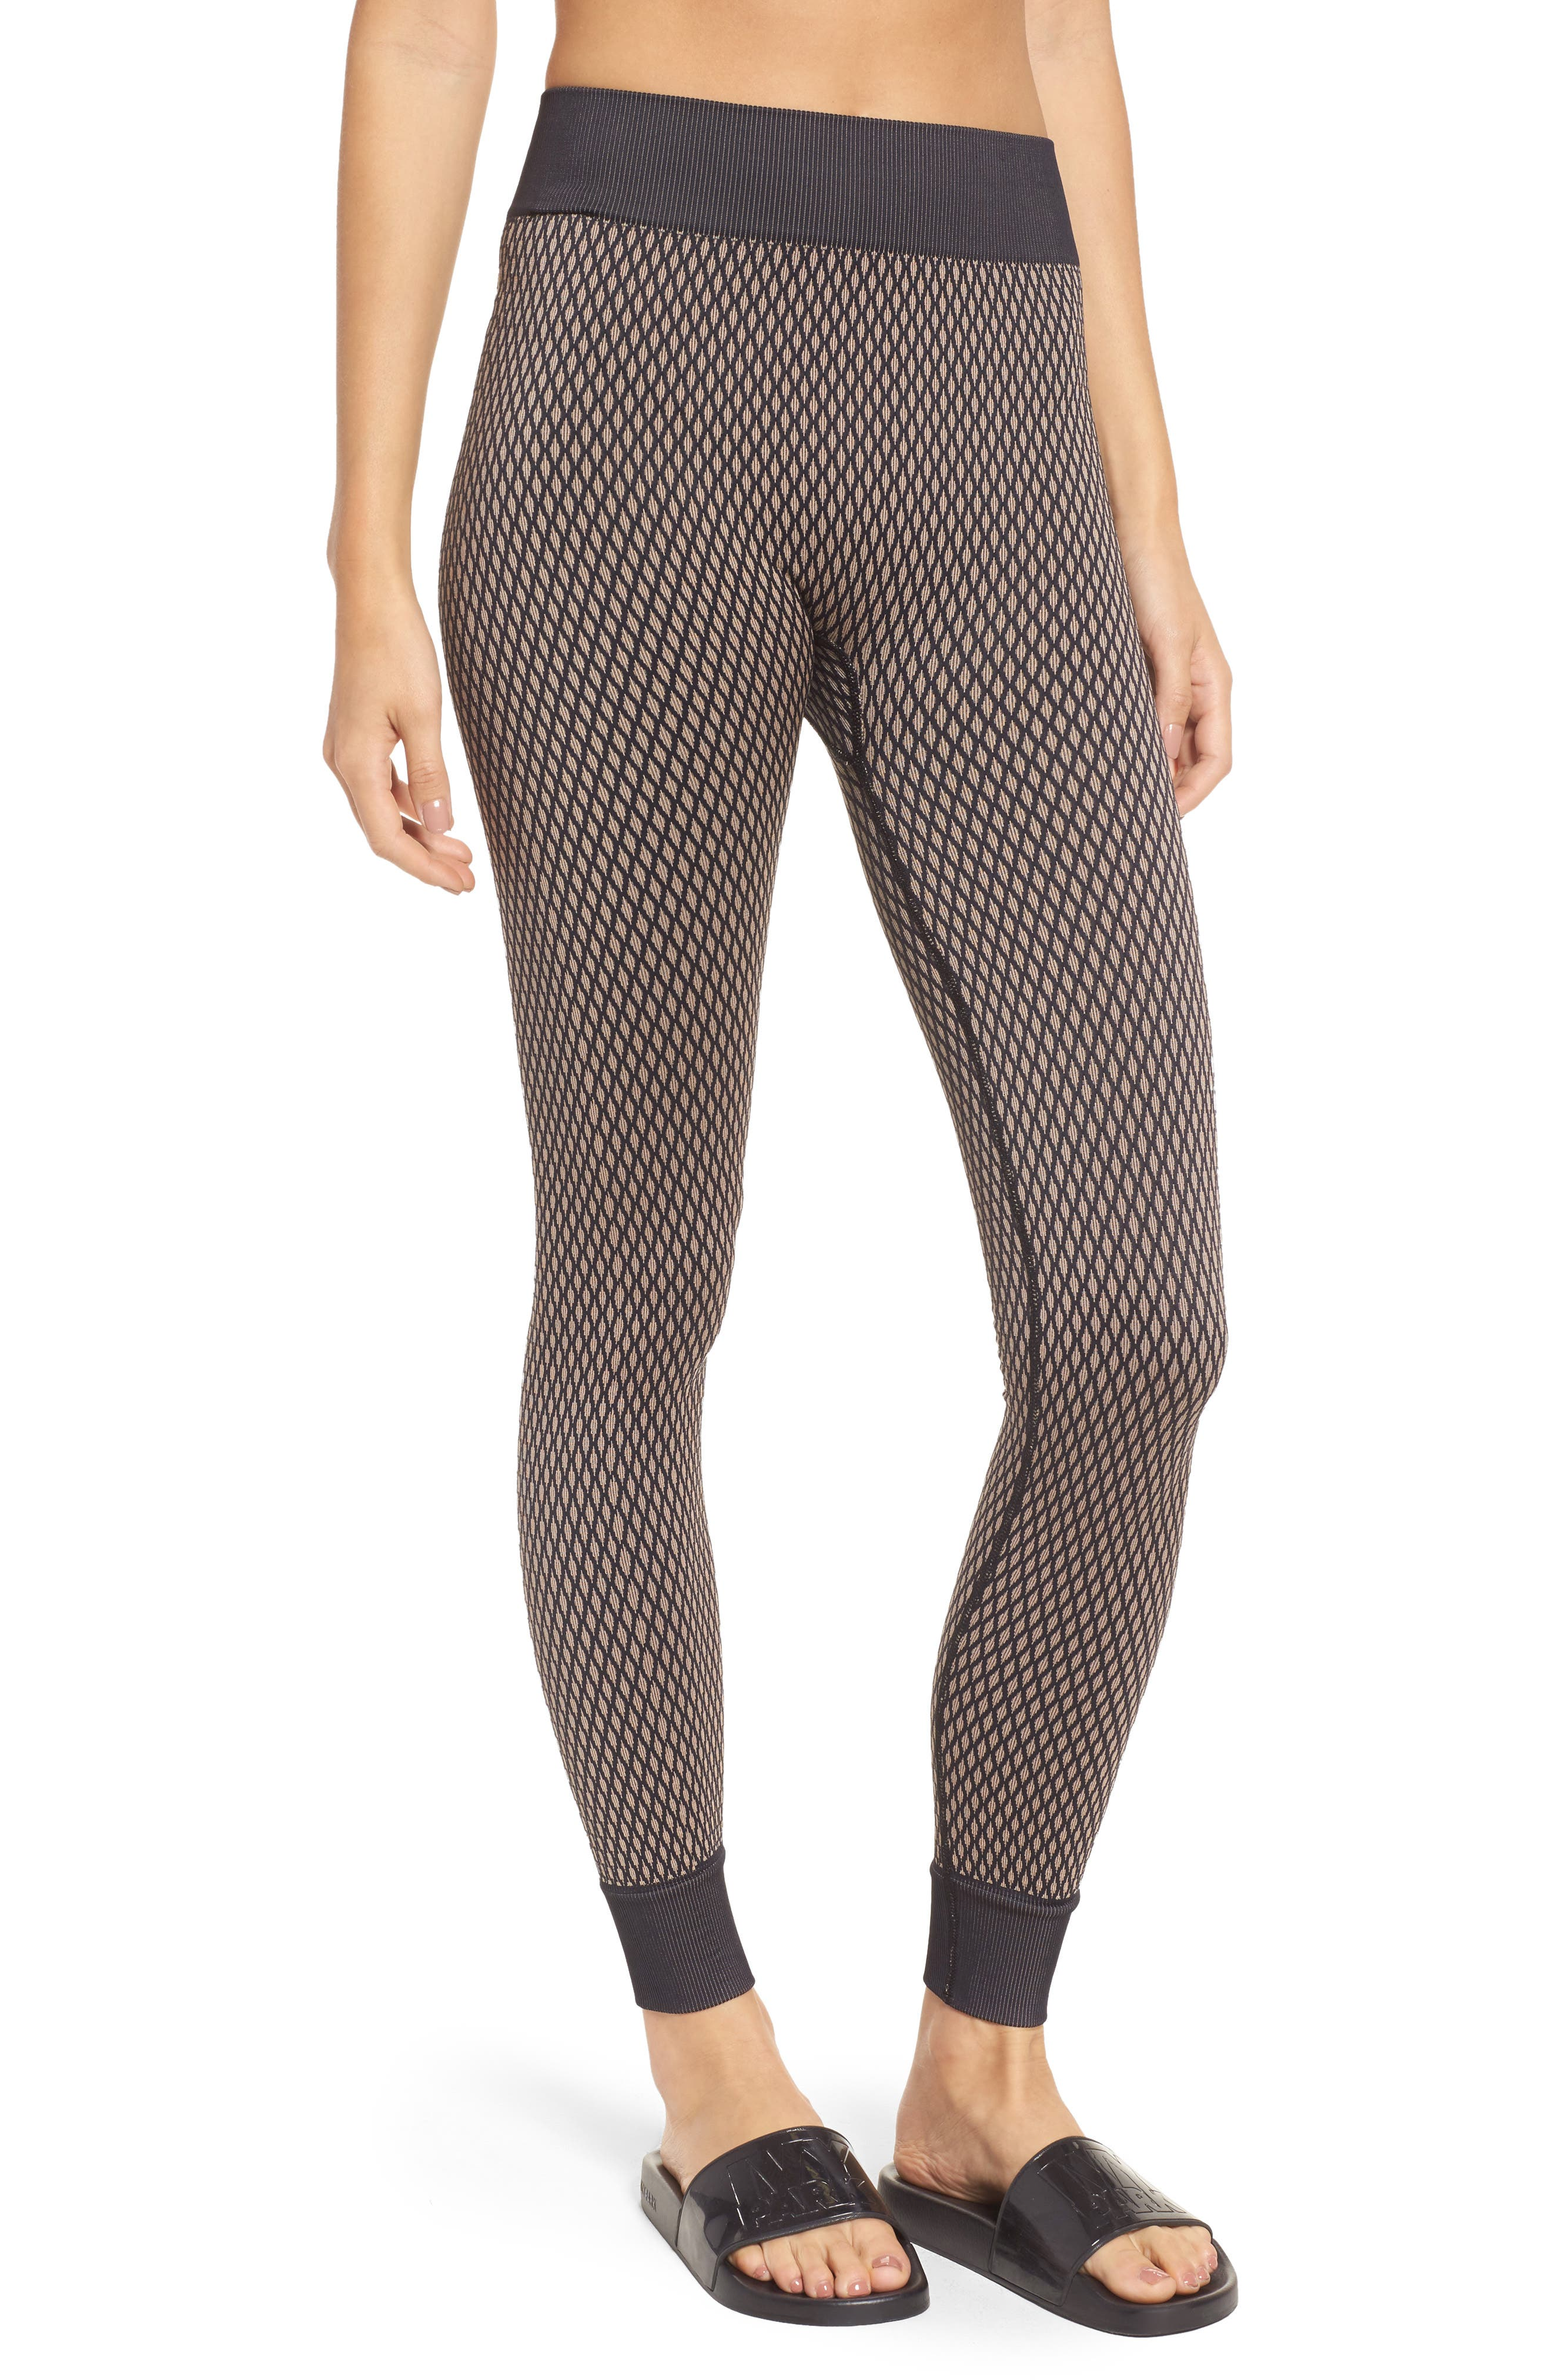 Fishnet Seamless Leggings,                             Main thumbnail 1, color,                             001